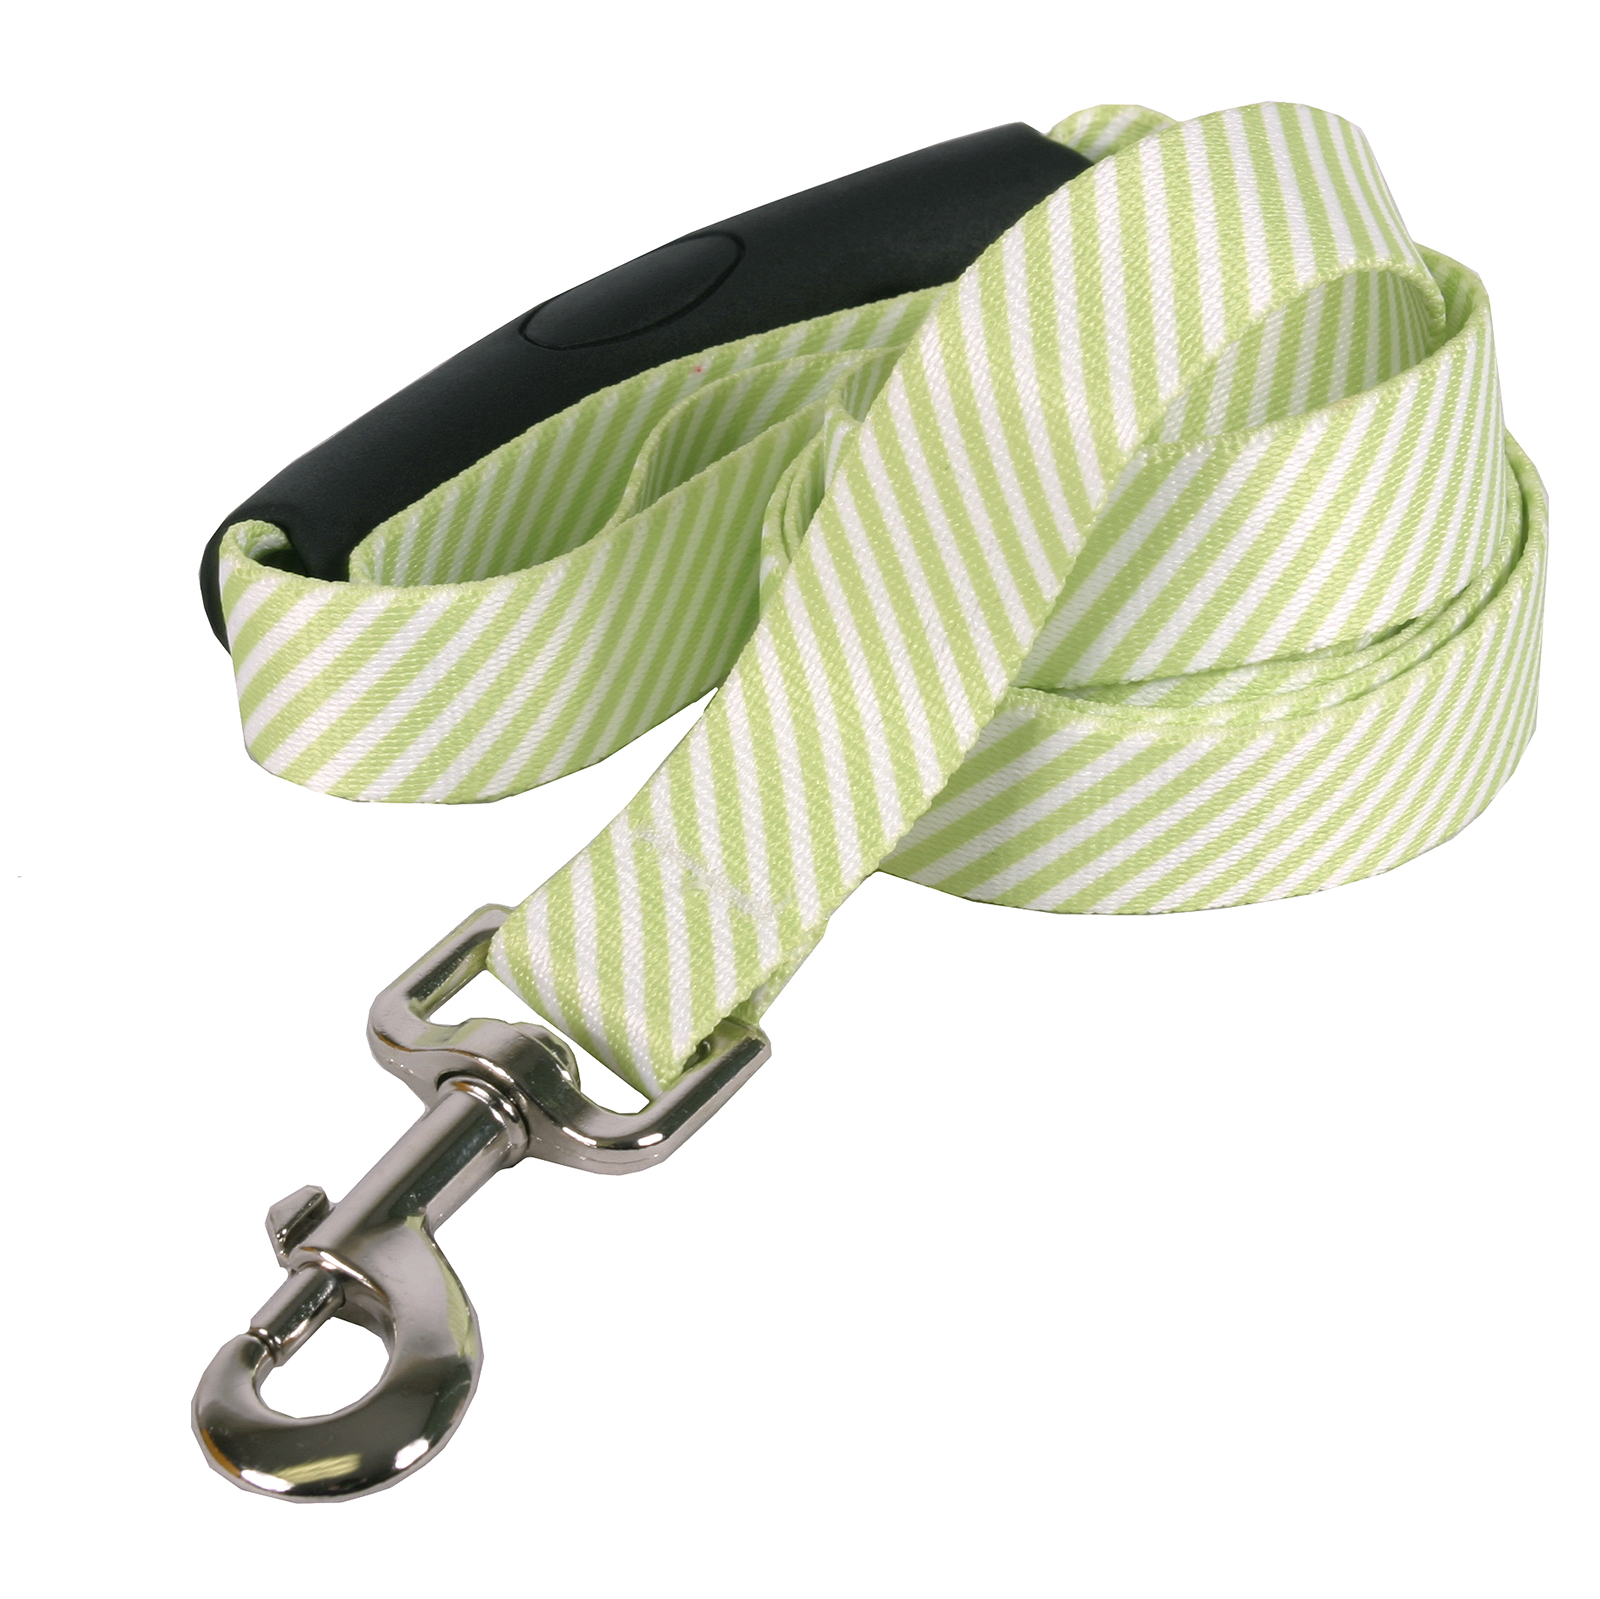 Southern Dawg: Seersucker Green EZ-Grip Dog Leash